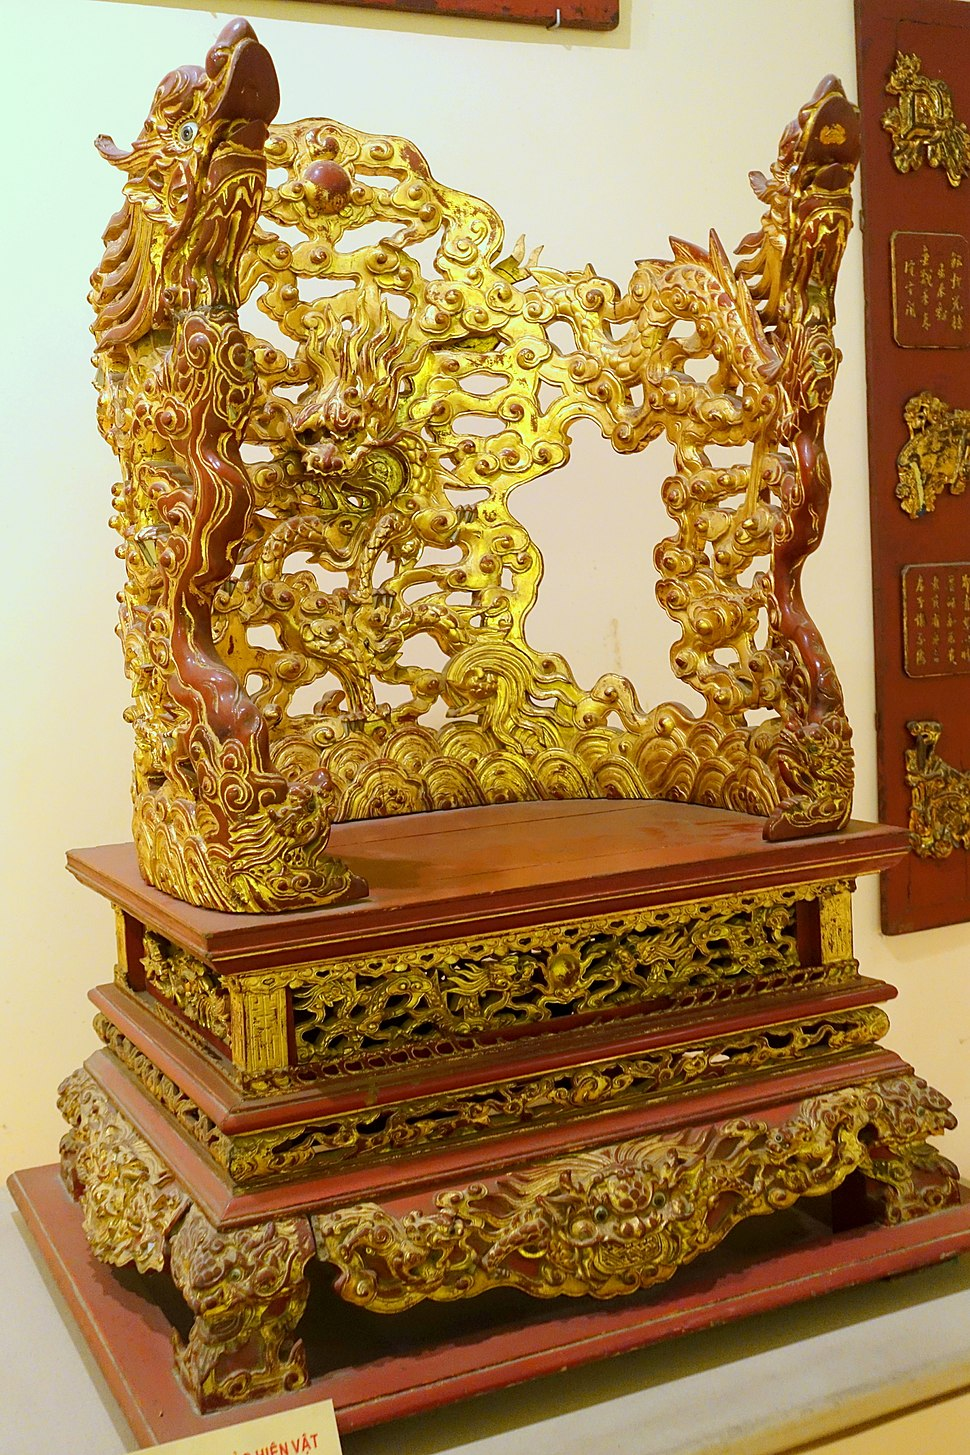 Altar in the shape of a chair, Nguyen dynasty, 19th to early 20th century, crimson and gilded wood, view 2 - National Museum of Vietnamese History - Hanoi, Vietnam - DSC05626